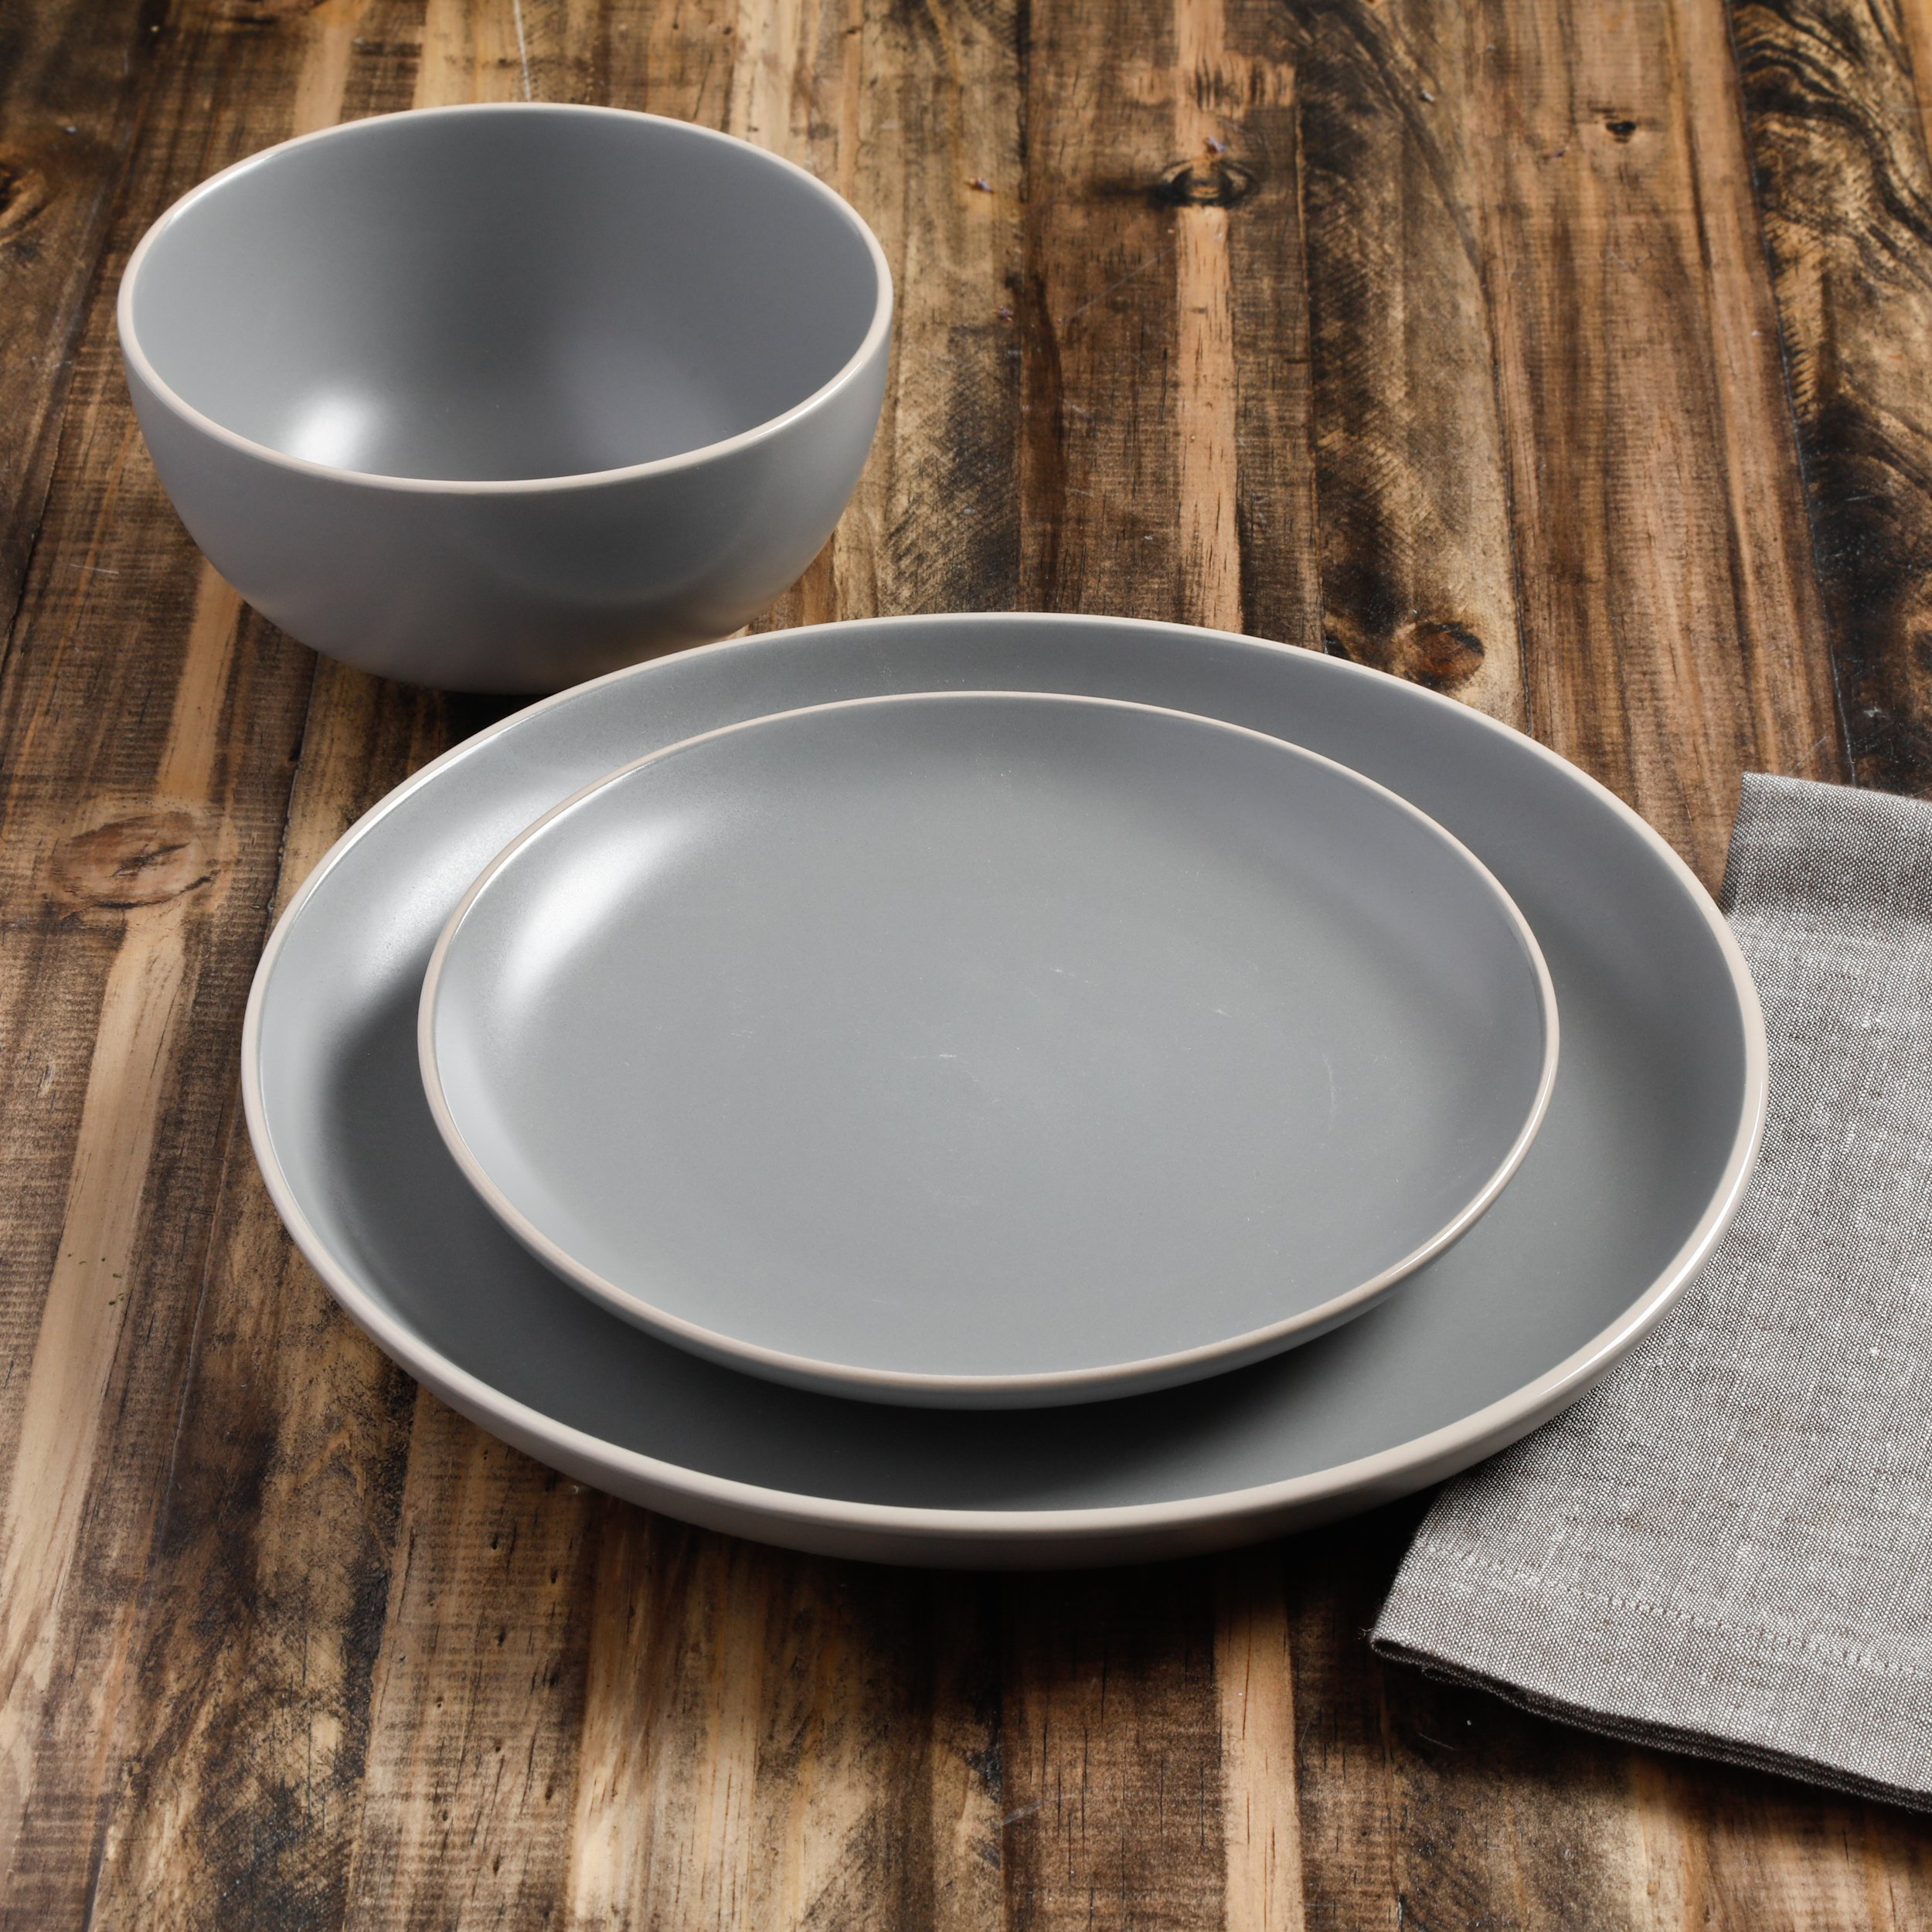 Gibson Home 114388.12RM Rockaway 12-Piece Dinnerware Set Service for 4, Grey Matte by Gibson Home (Image #6)